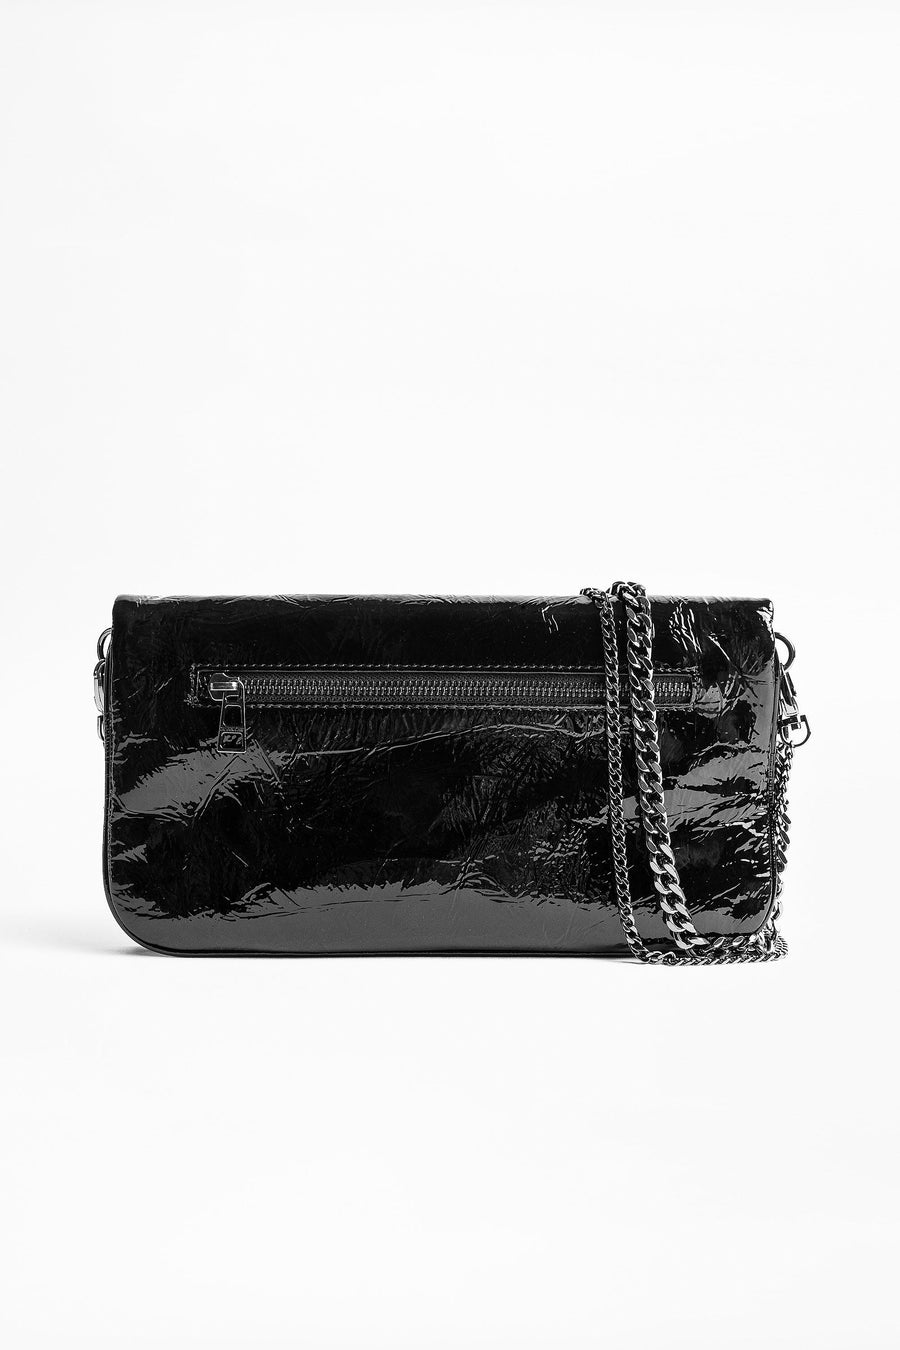 Zadig & Voltaire Rock Wrinkle Patent Clutch